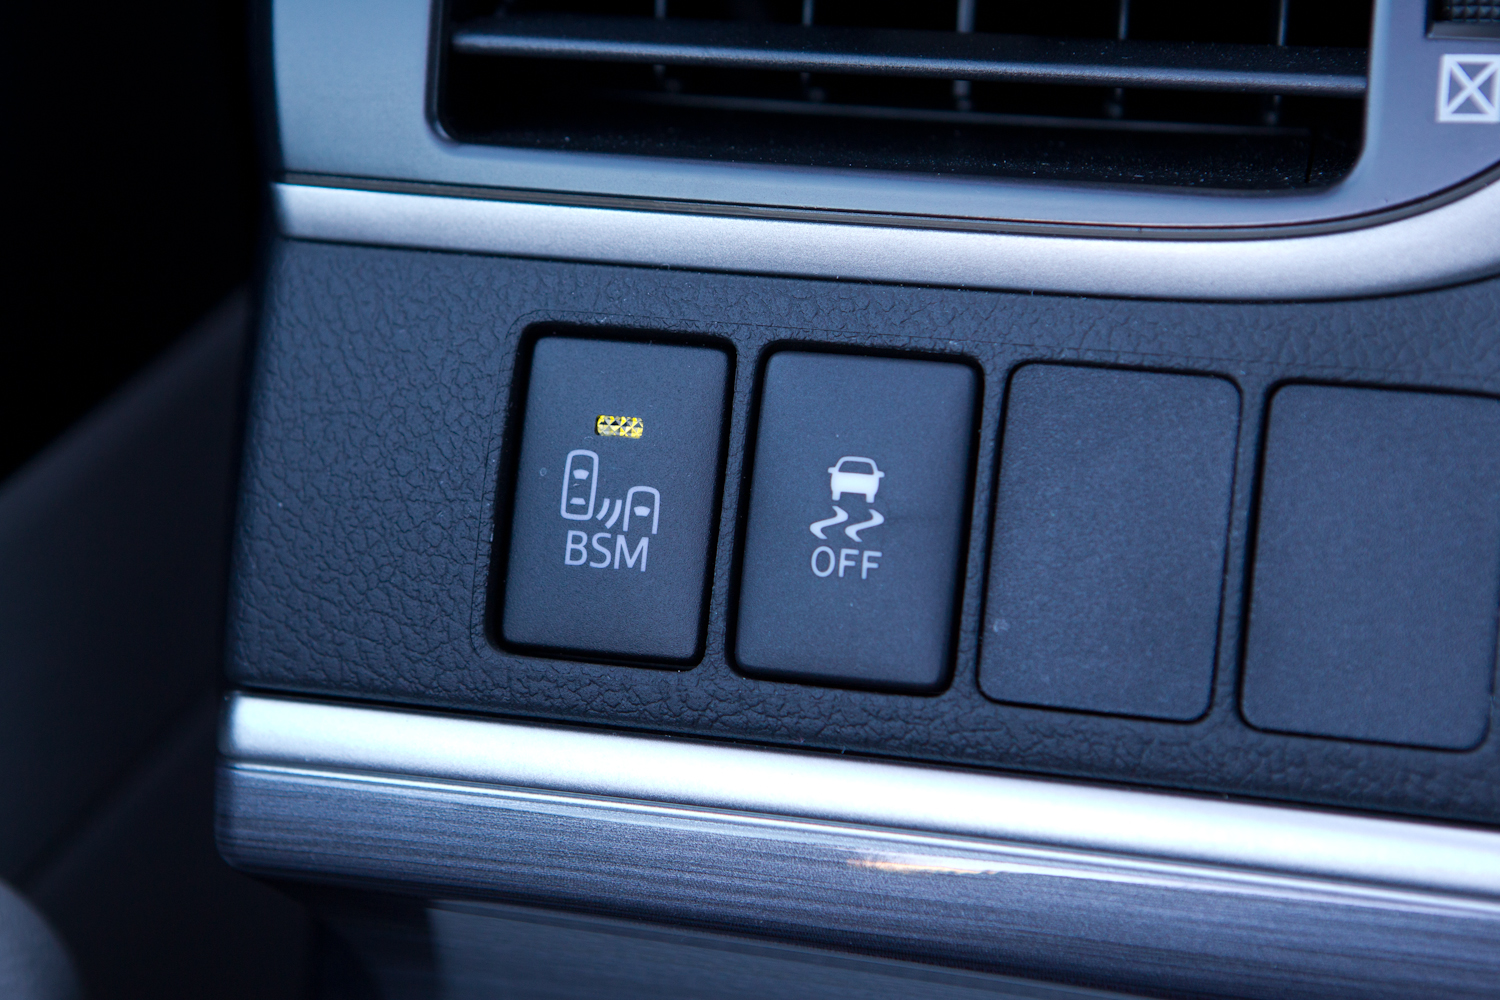 Blind Spot Monitor toggle